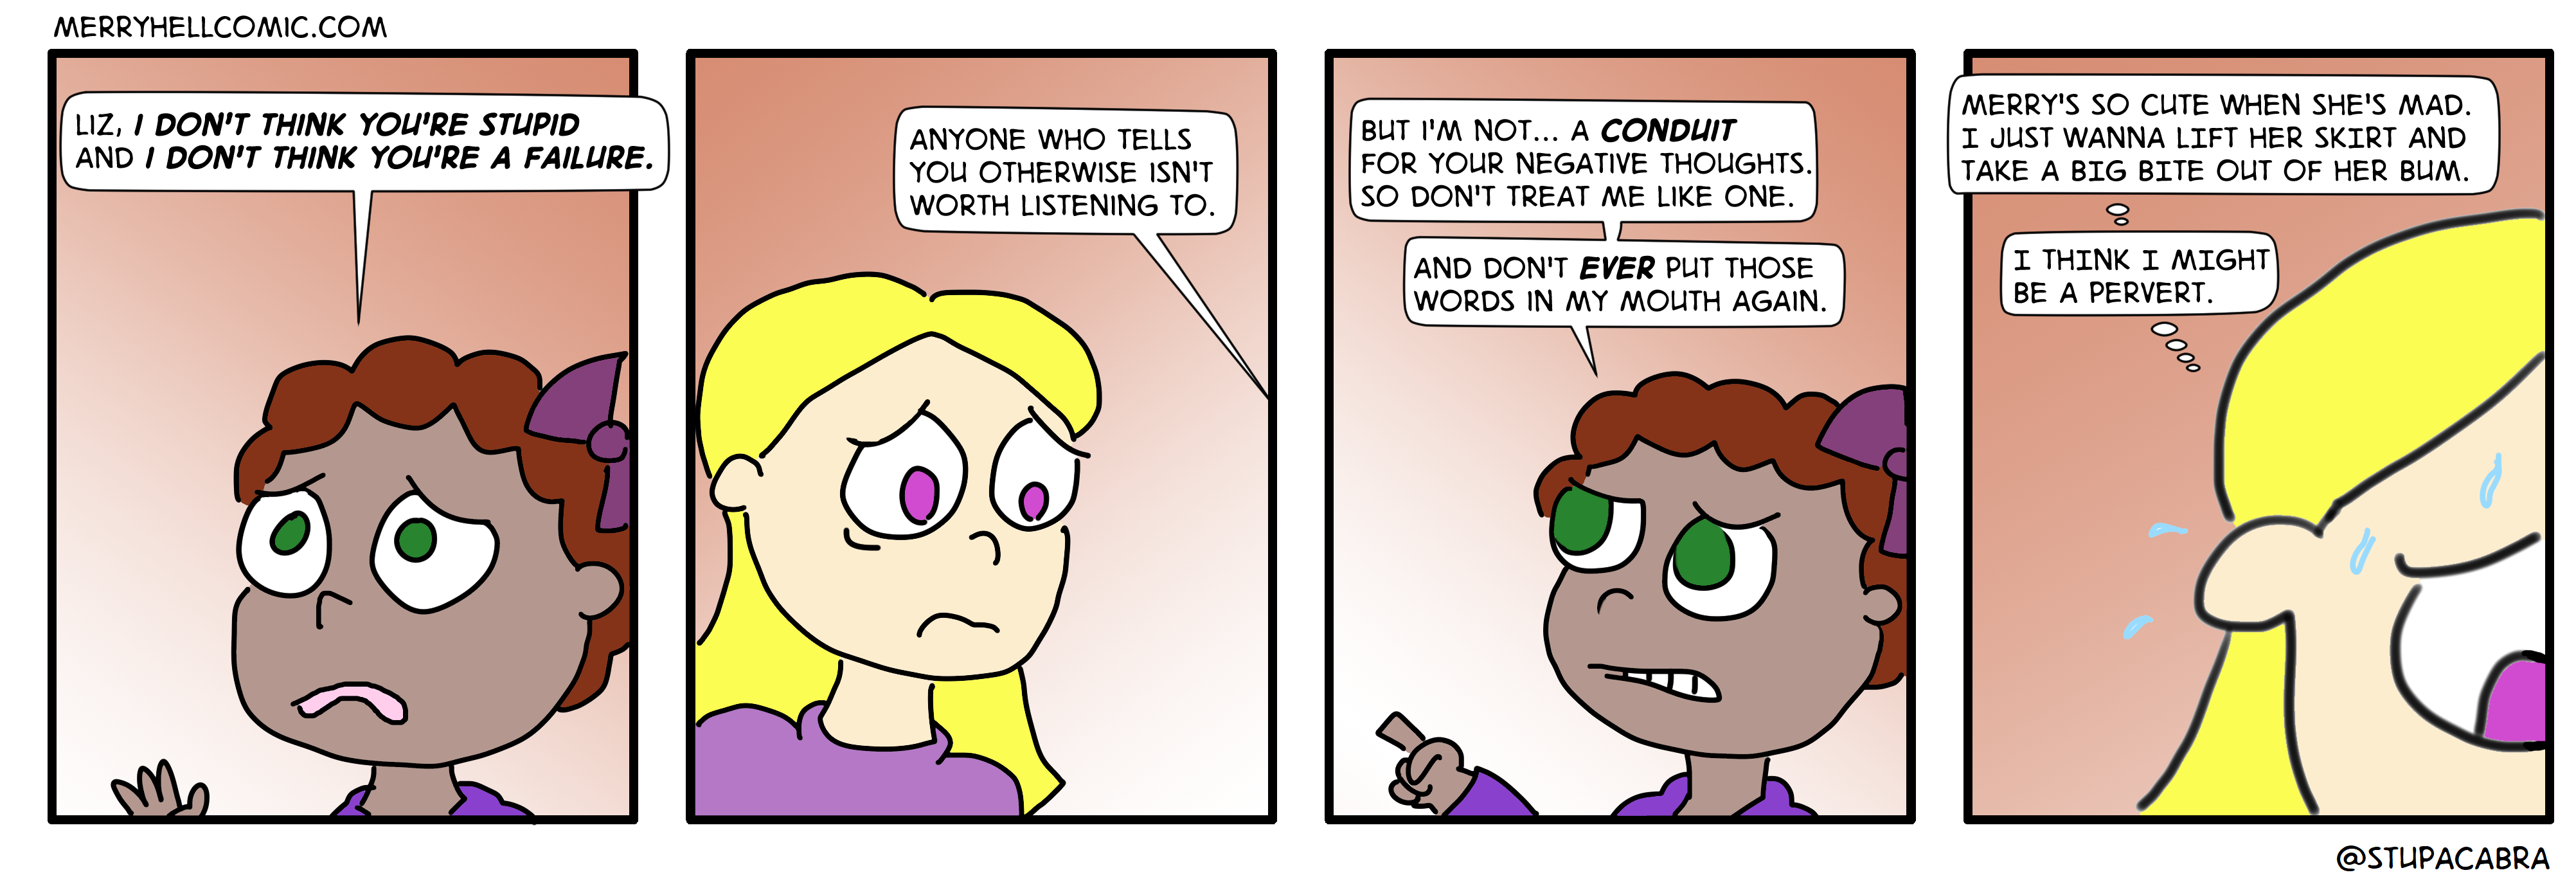 68. Liz's mad thoughts